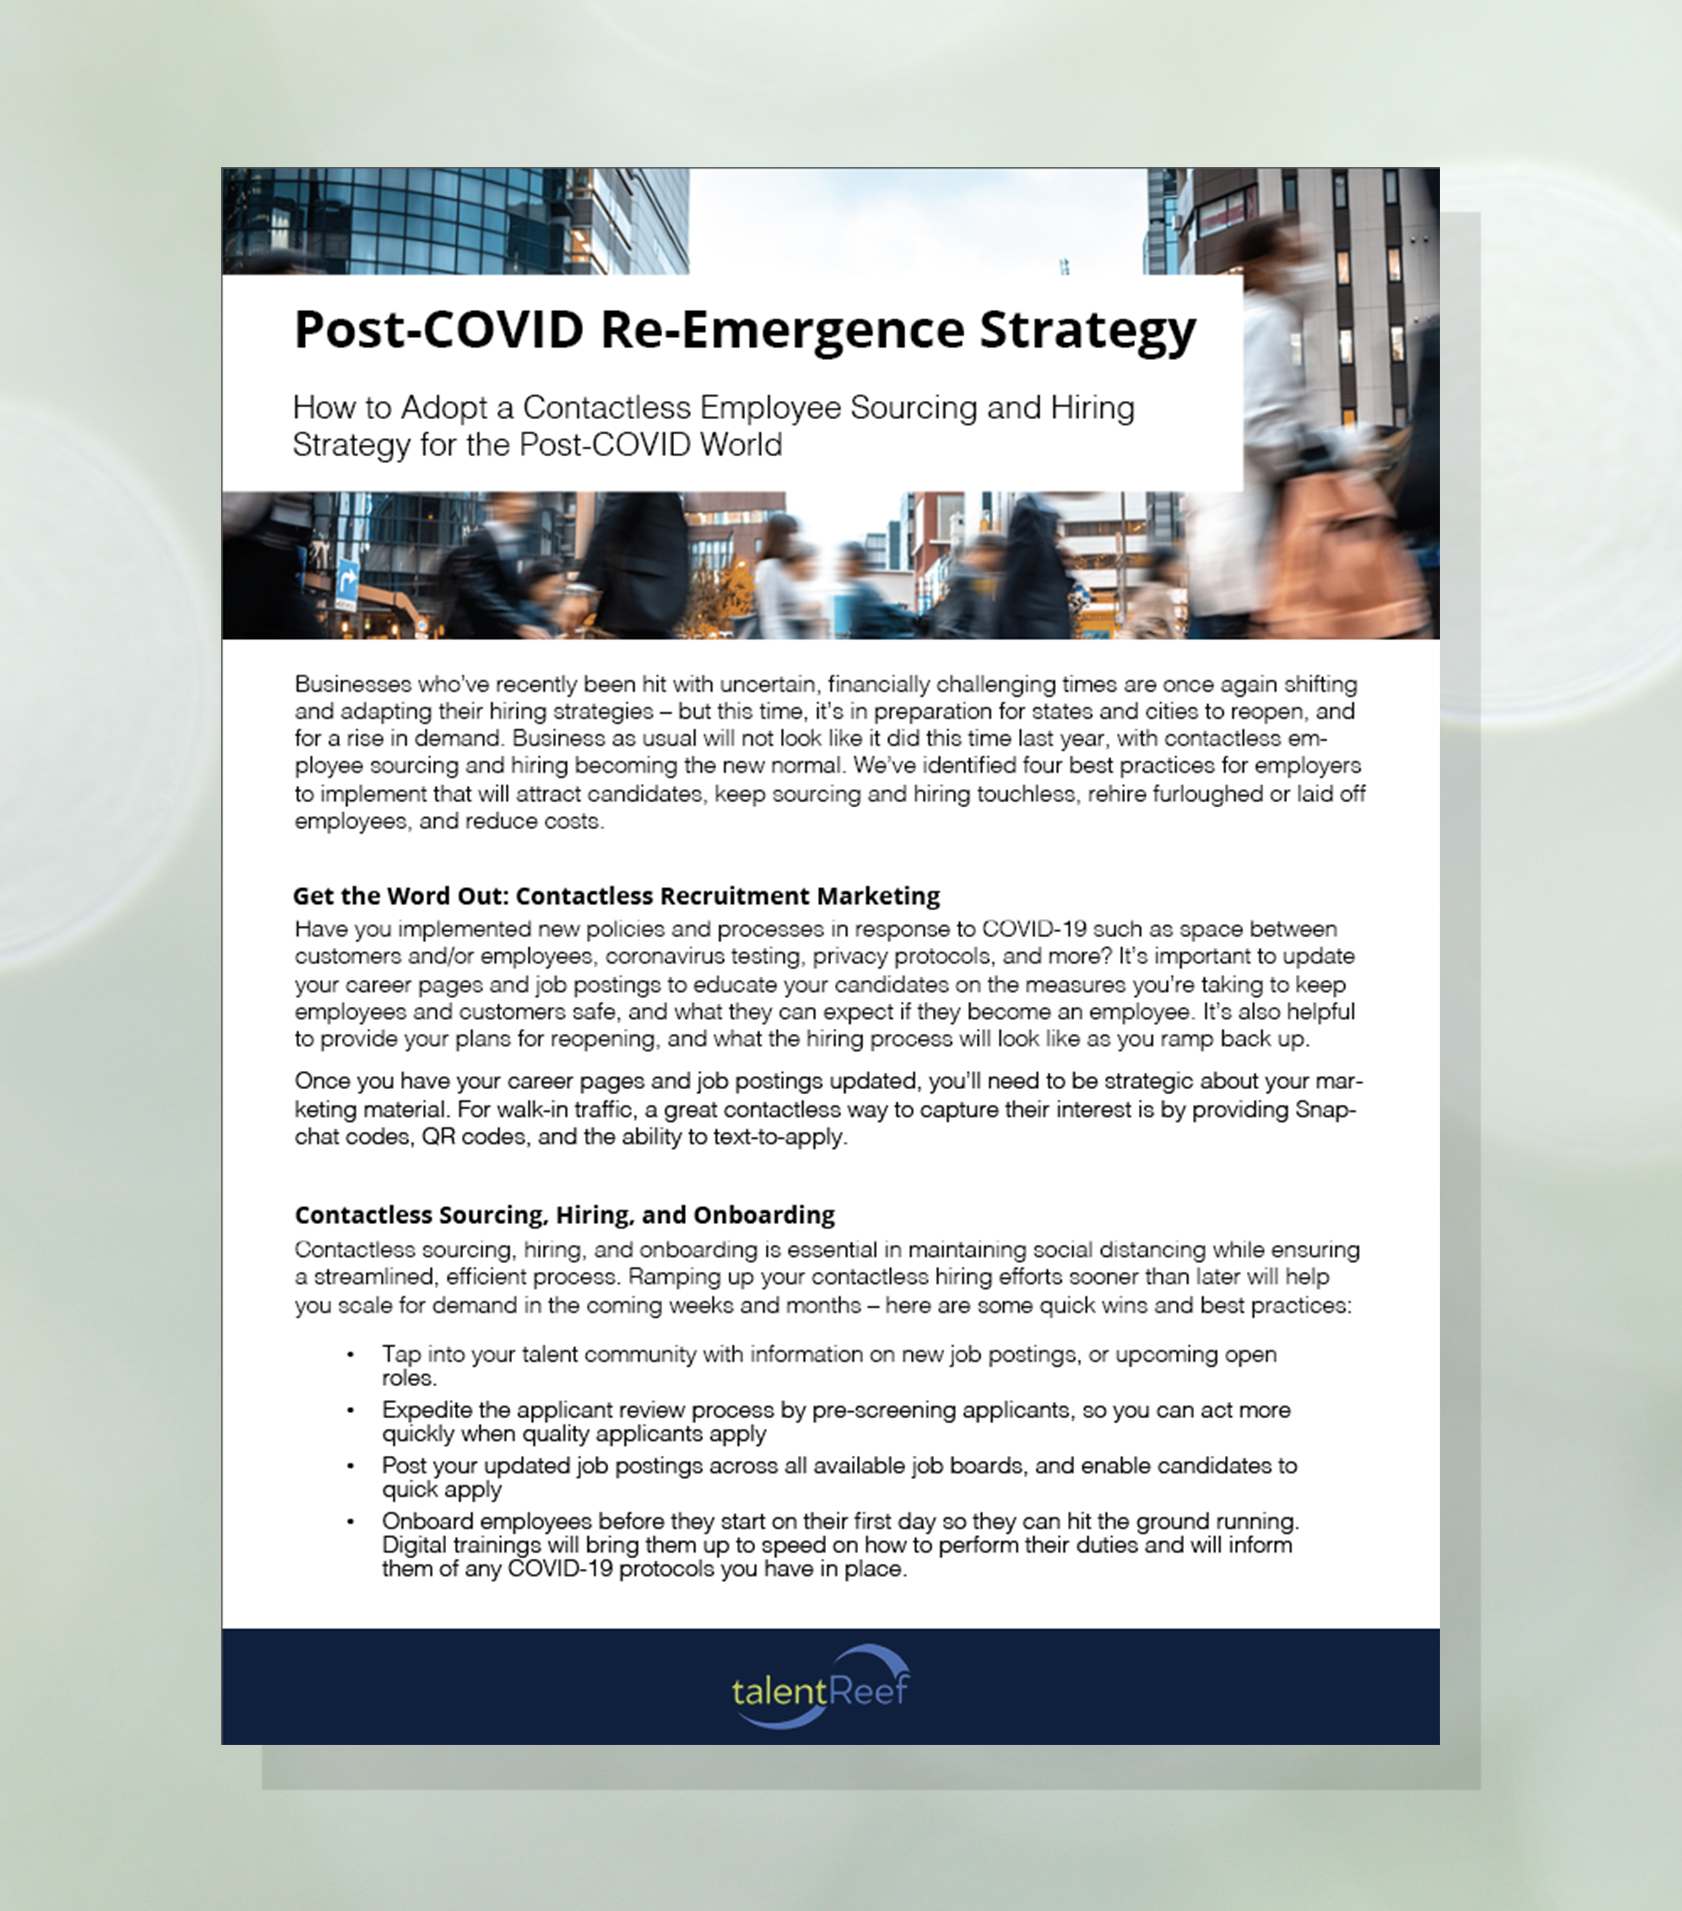 post covid re emergence datasheet tile for covid landing page